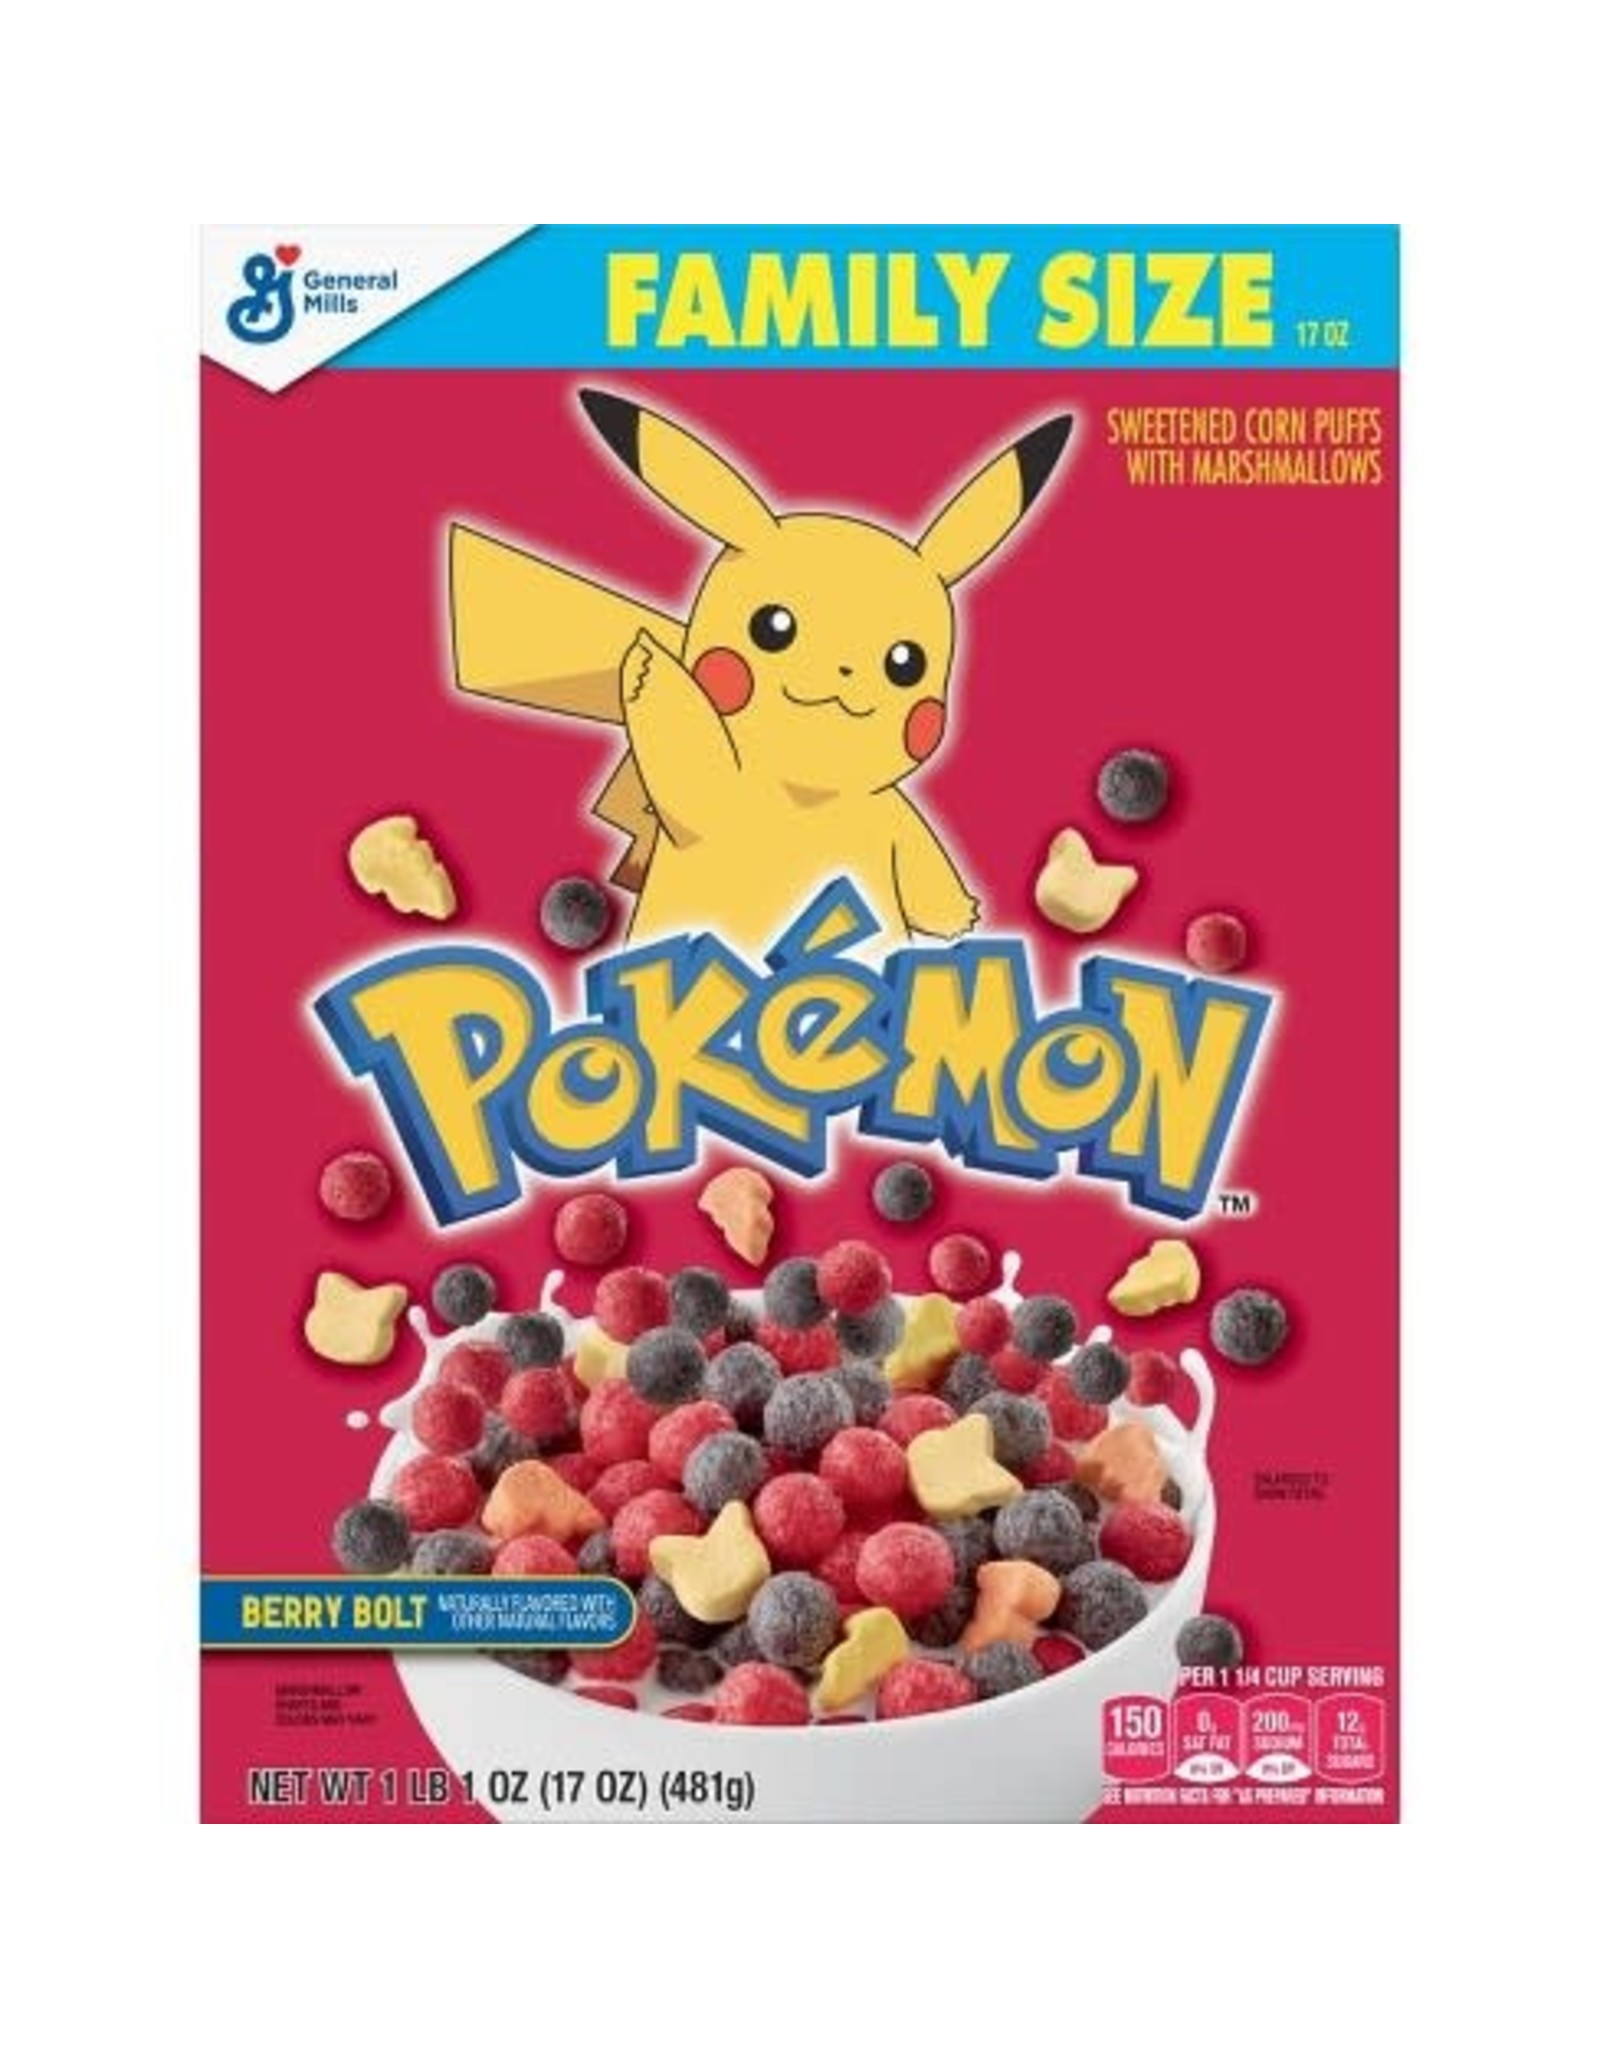 Pokémon Berry Bolt Cereal - Family Size - 481 g - Sweetend Corn Puffs With Marshmallows